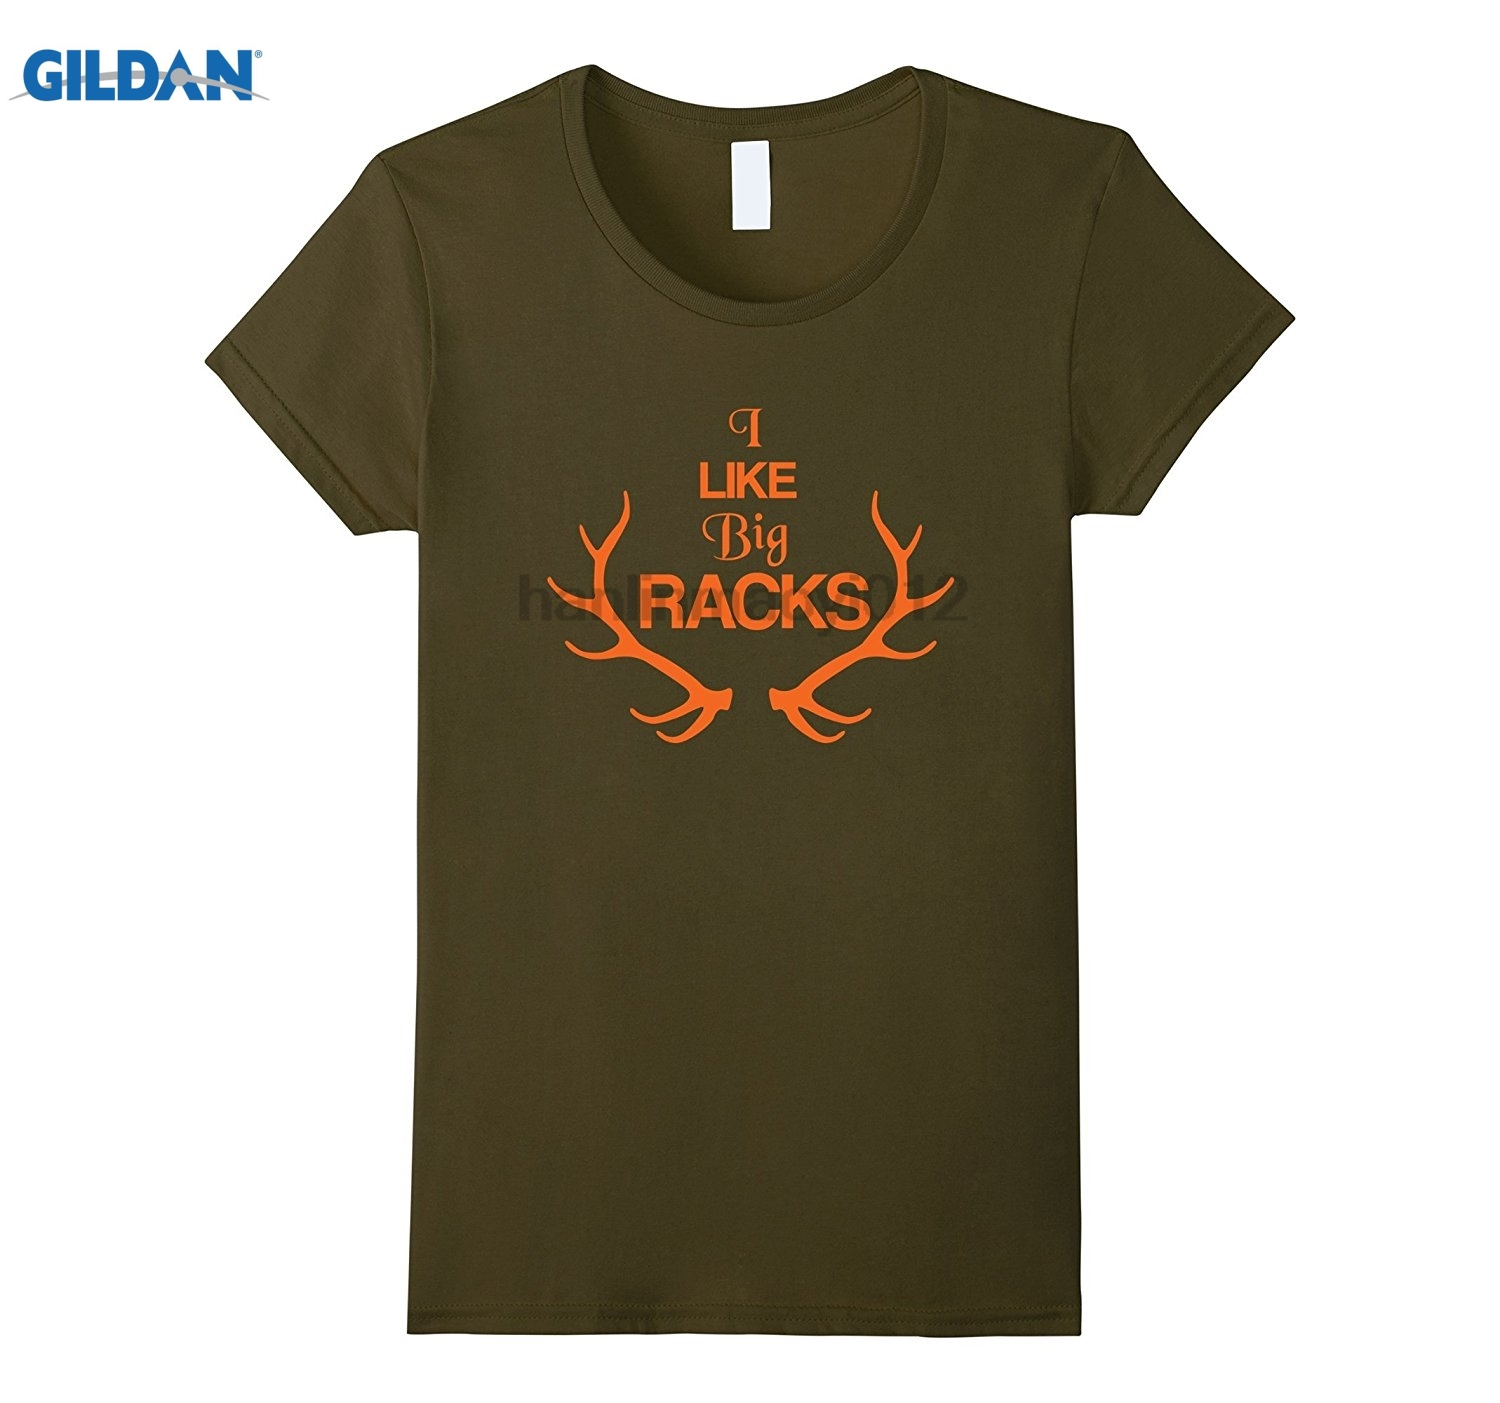 GILDAN Deer Hunter T-Shirt I Like Big Racks Blaze Orange Doe Womens T-shirt